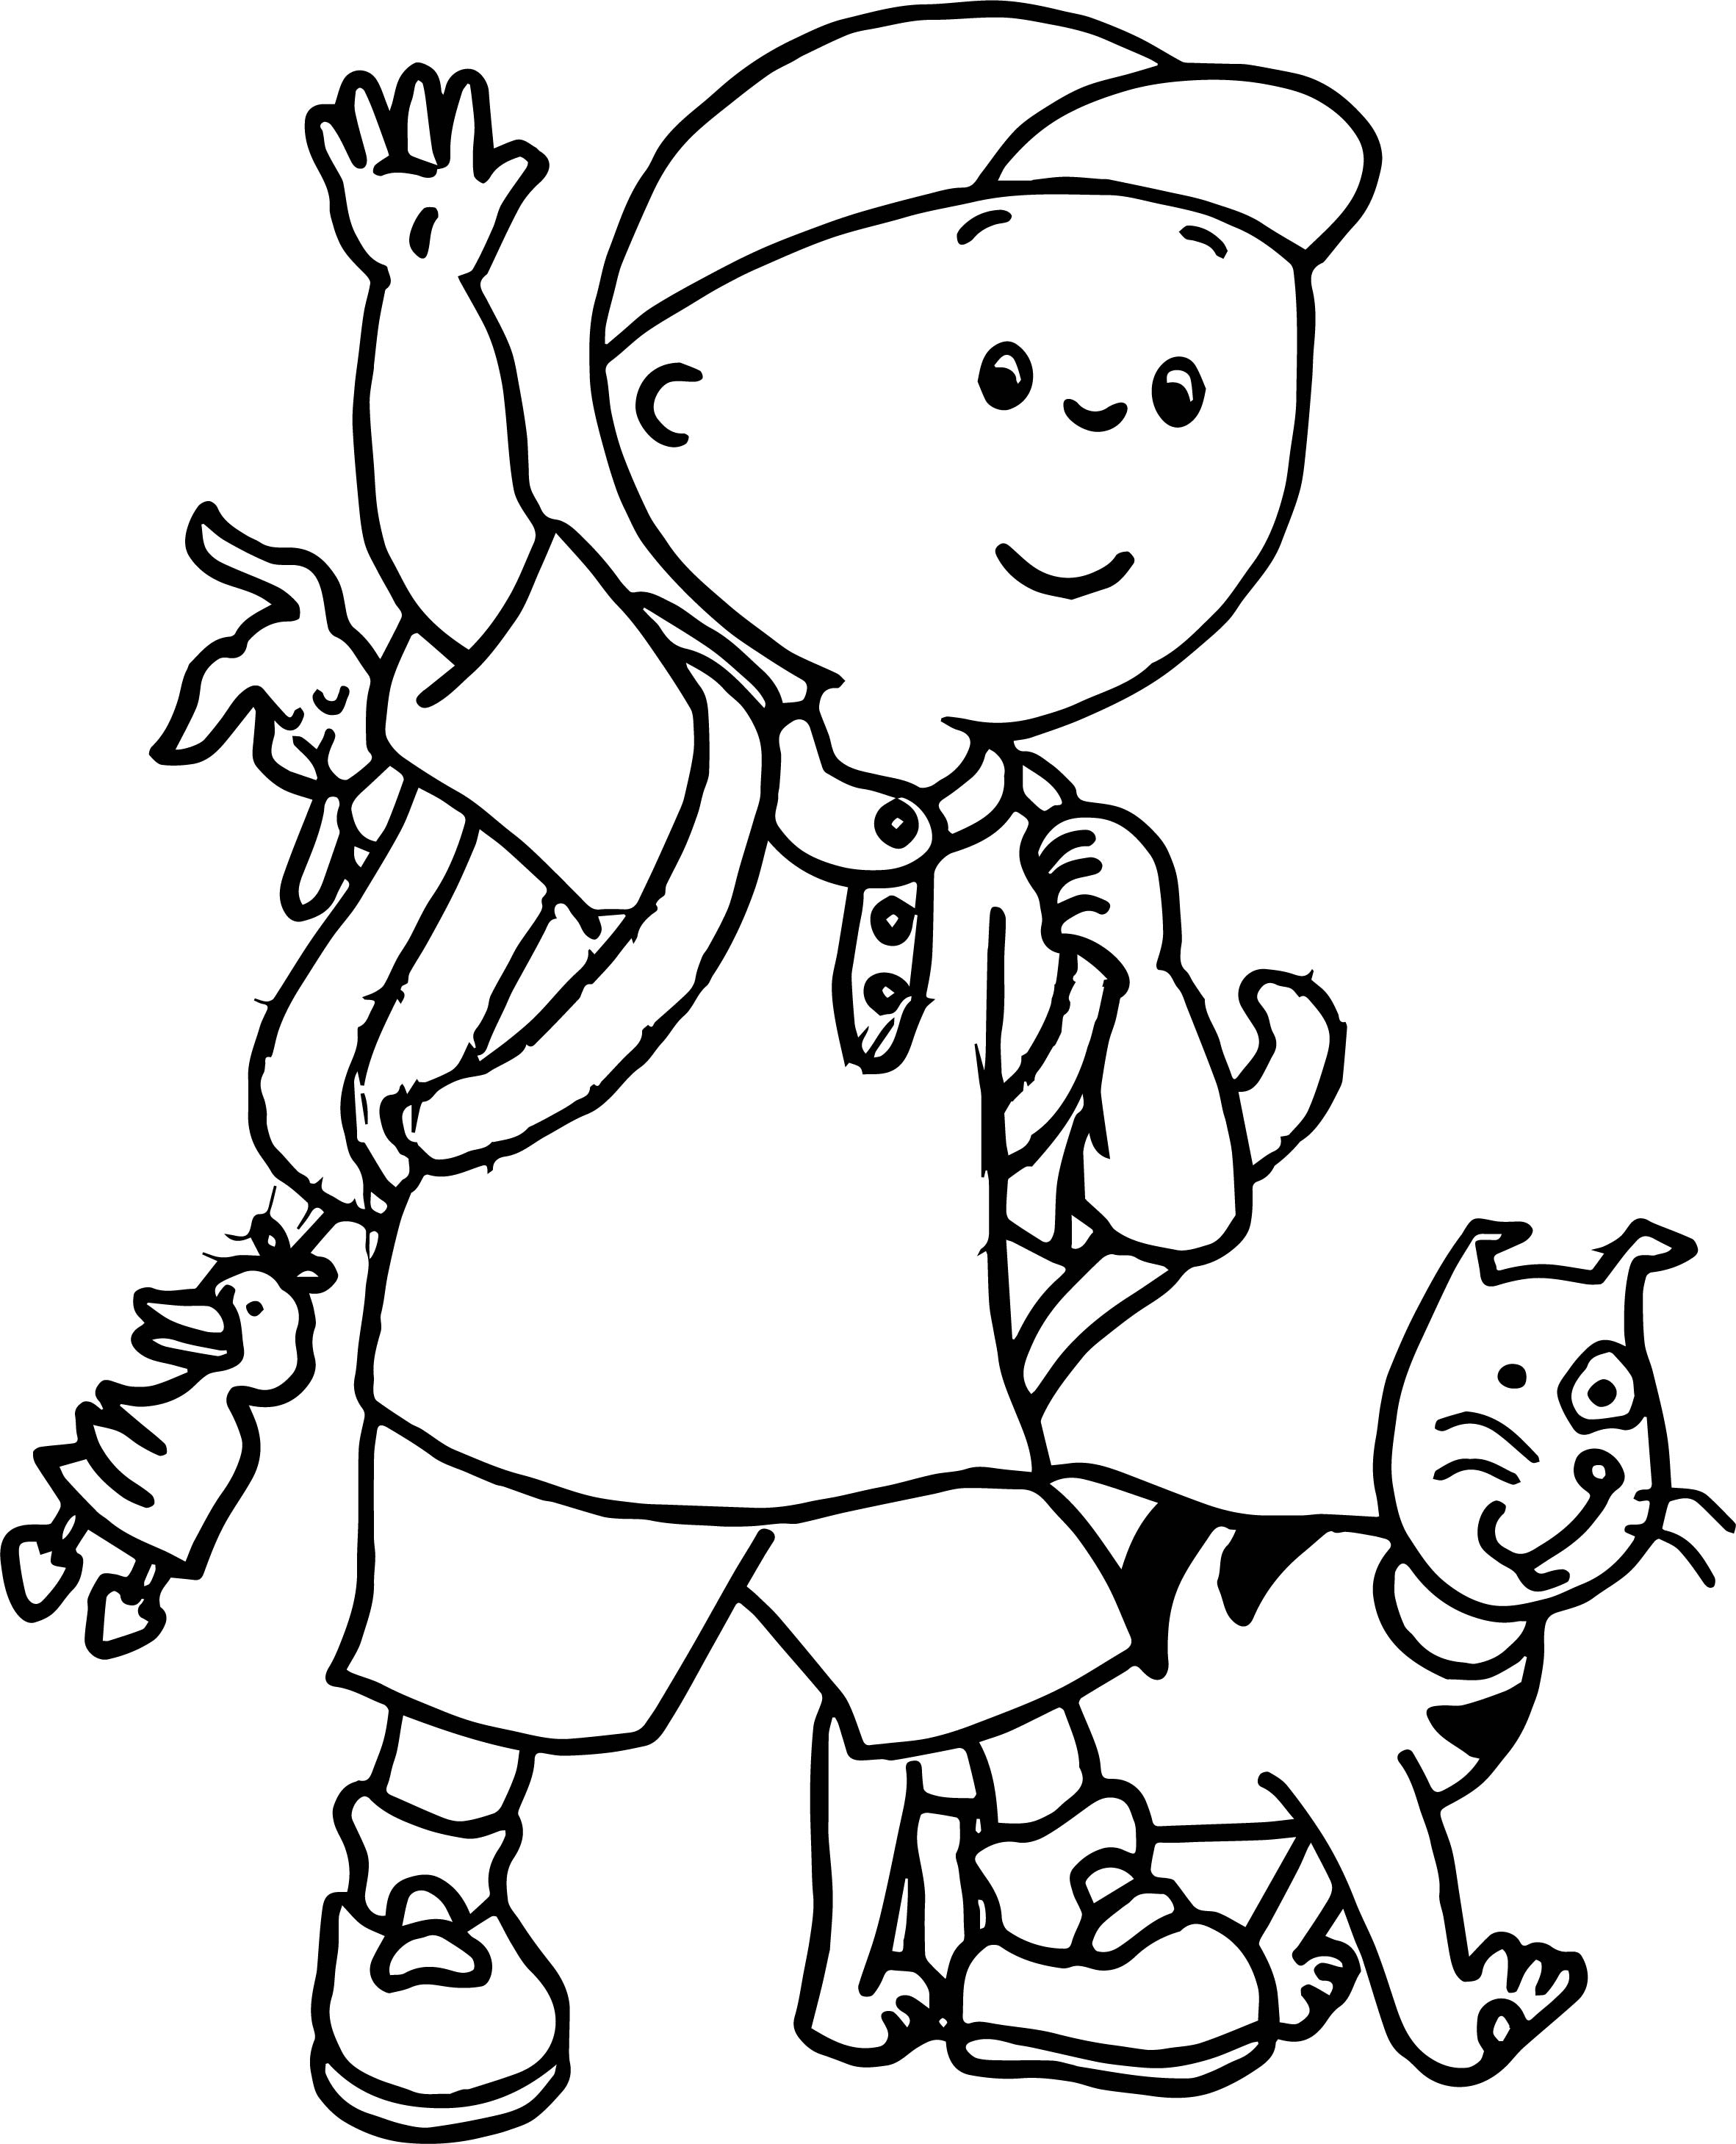 Cute Caillou Coloring Pages Photos - Entry Level Resume Templates ...